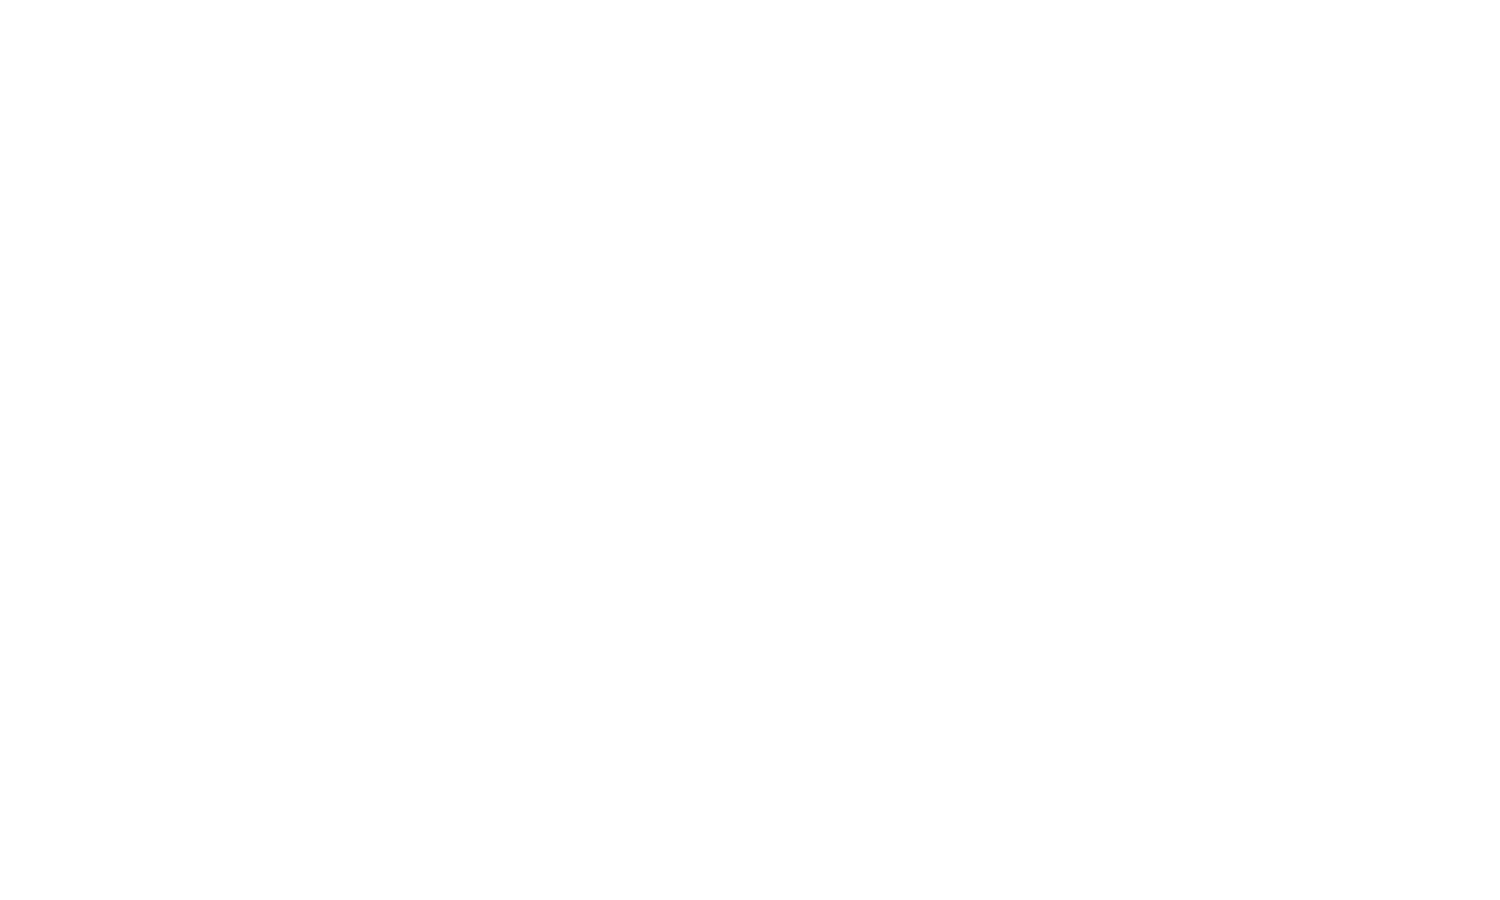 Brooks Brown